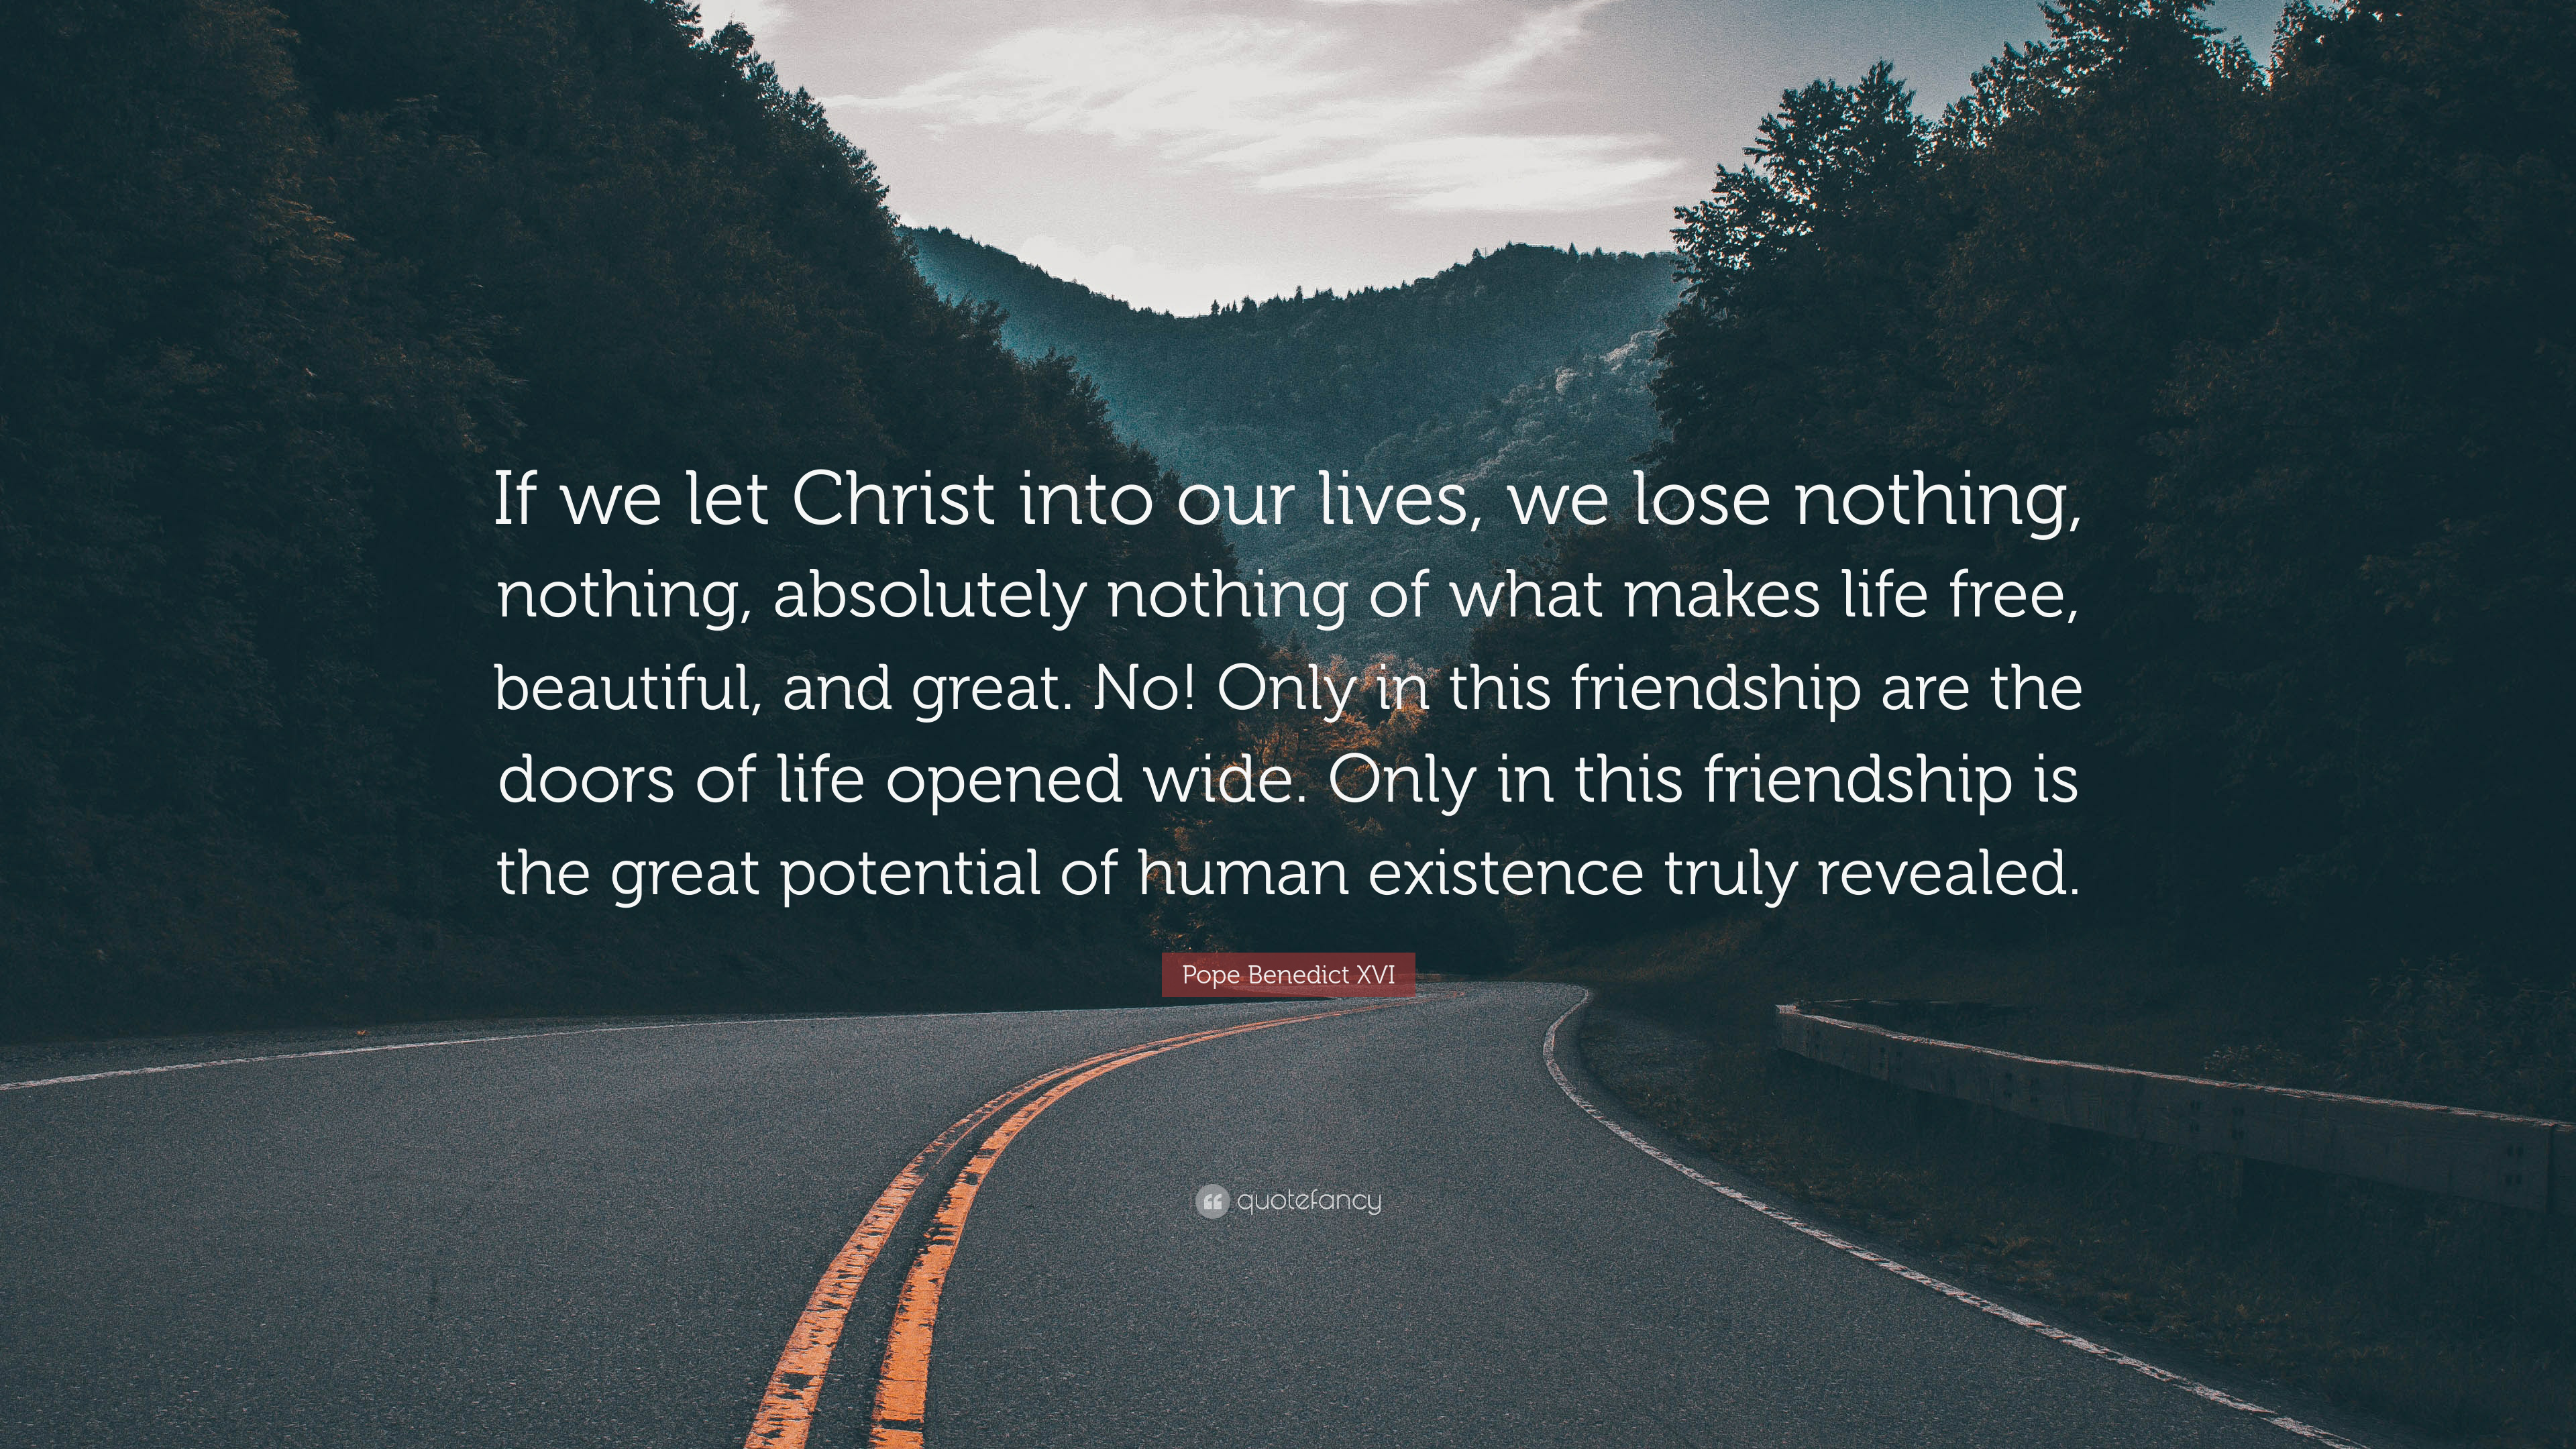 Pope Benedict Xvi Quote If We Let Christ Into Our Lives We Lose